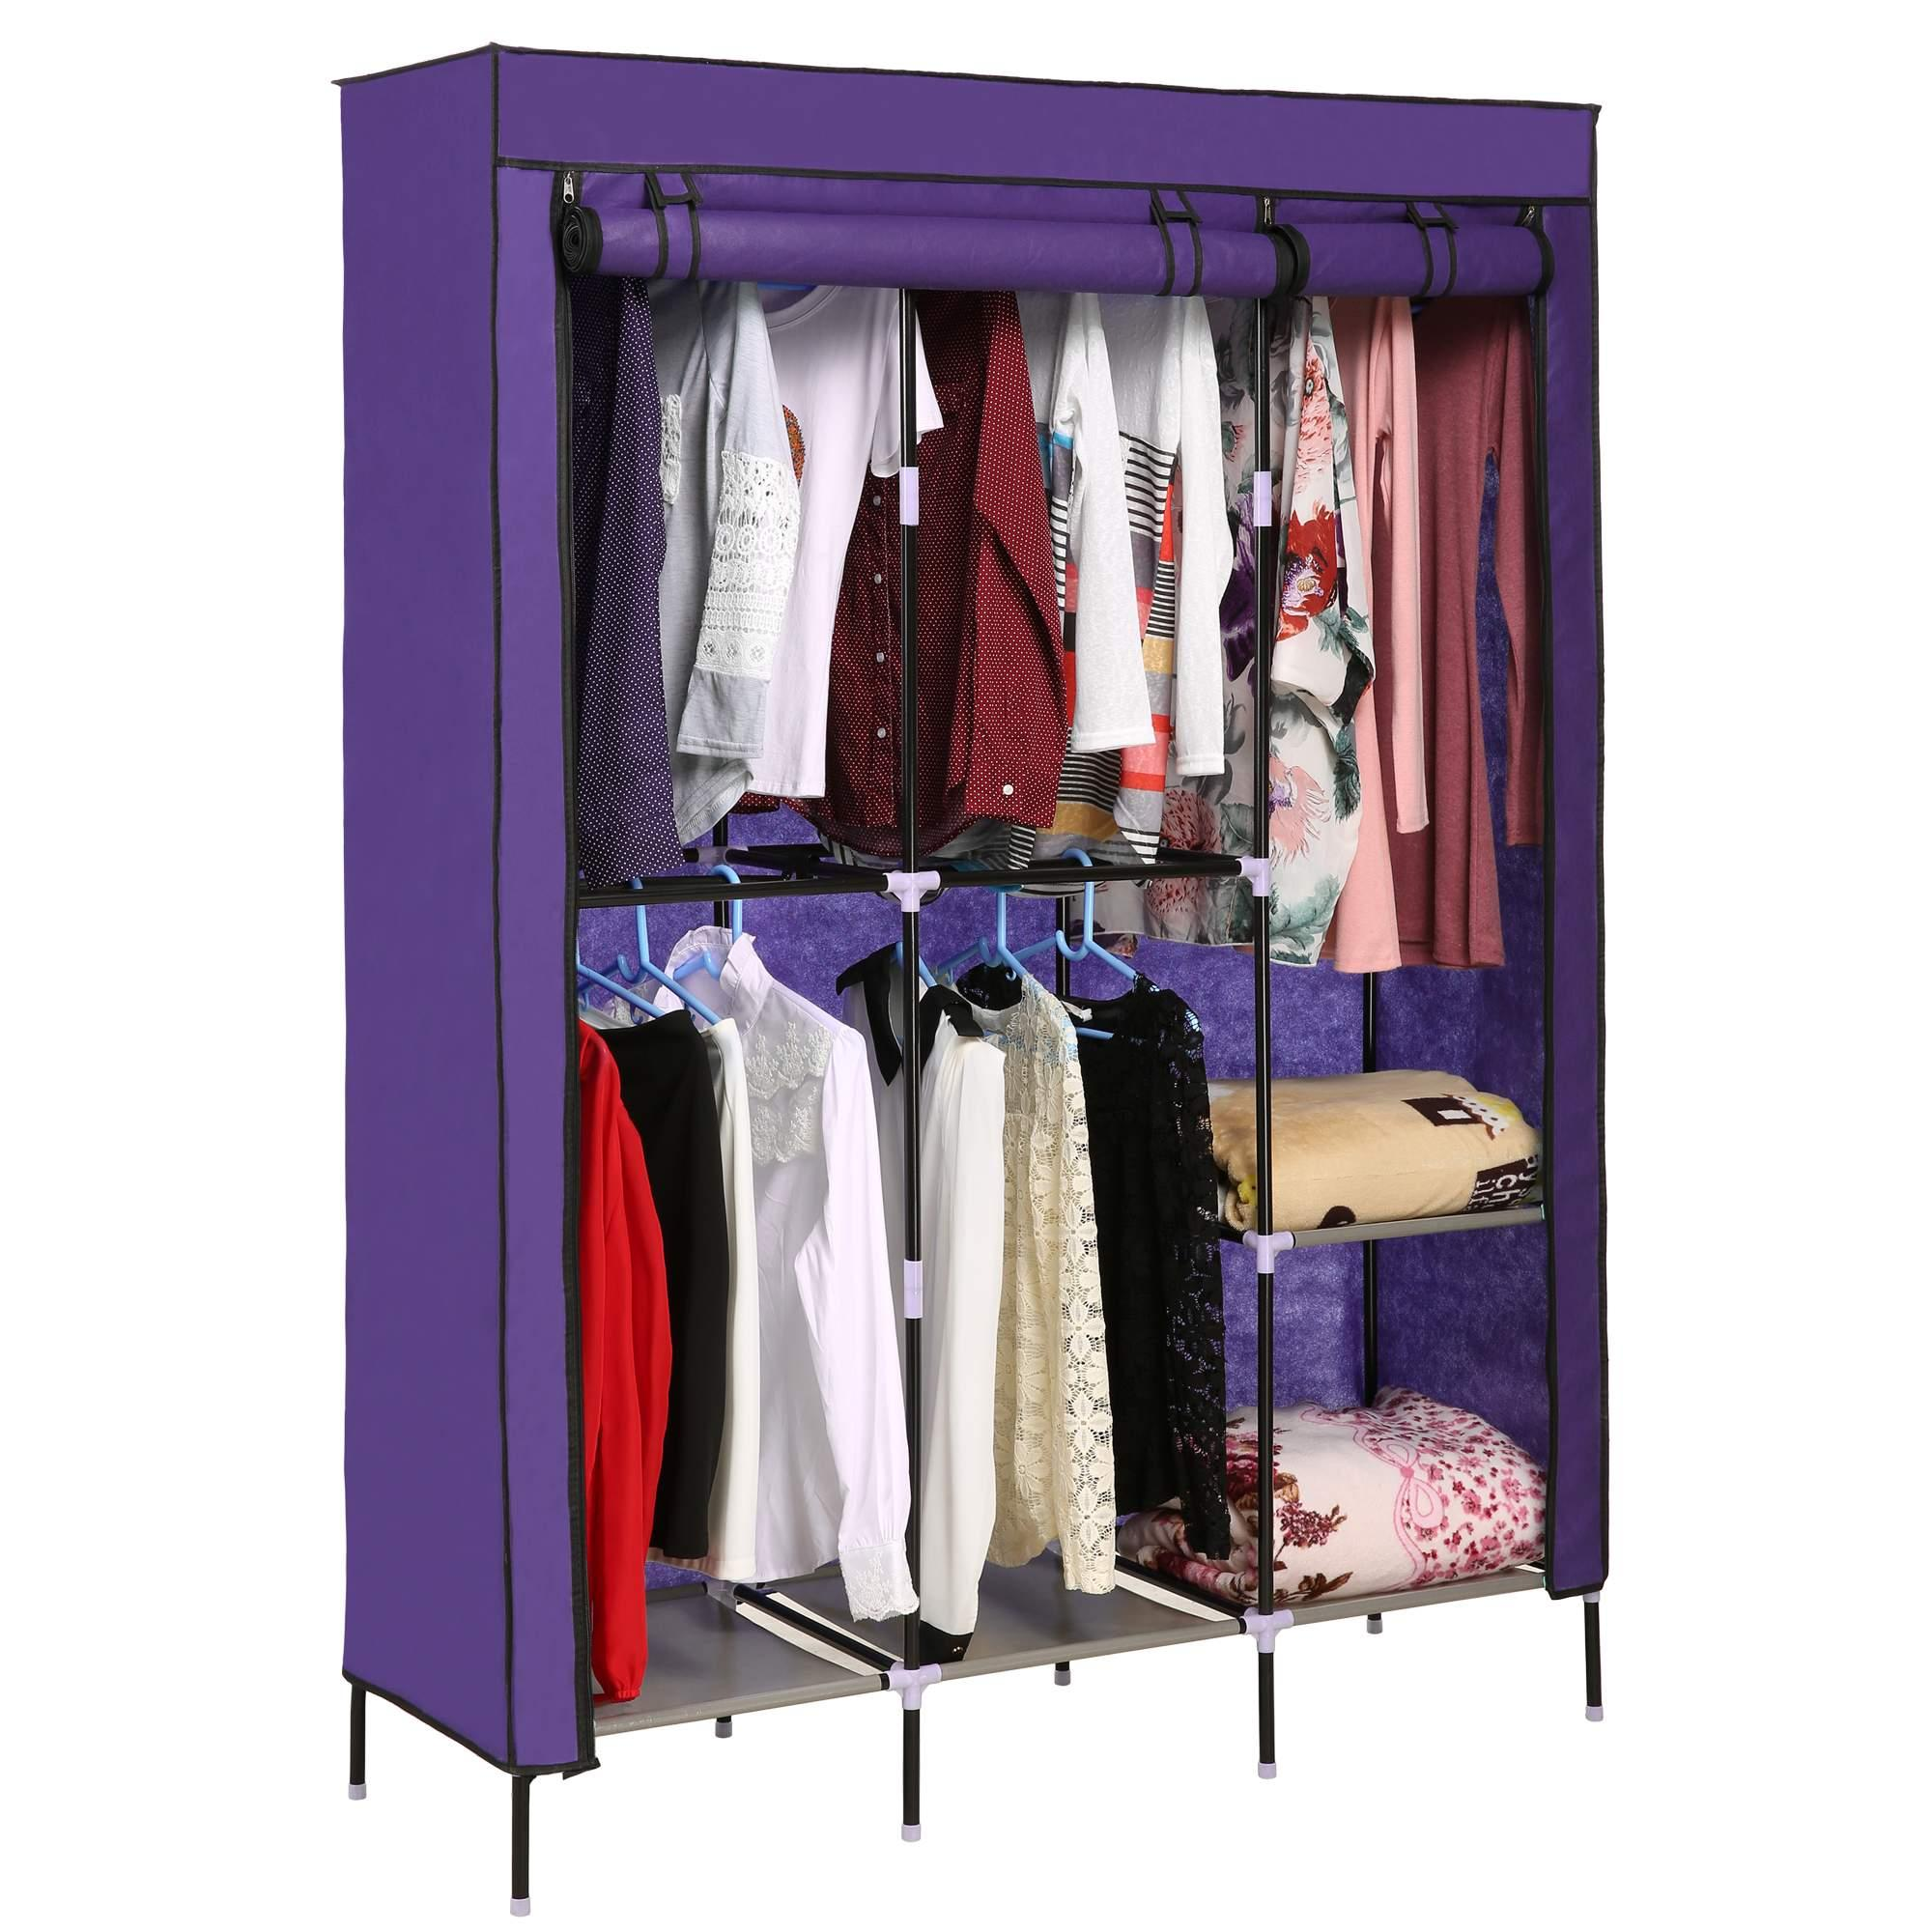 Superieur Closet Organizer Wardrobe Portable Wardrobe Storage Clothes Closet Portable Closet  Rod Storage Closet Standing Closet Folding Closet Portable Closet ...